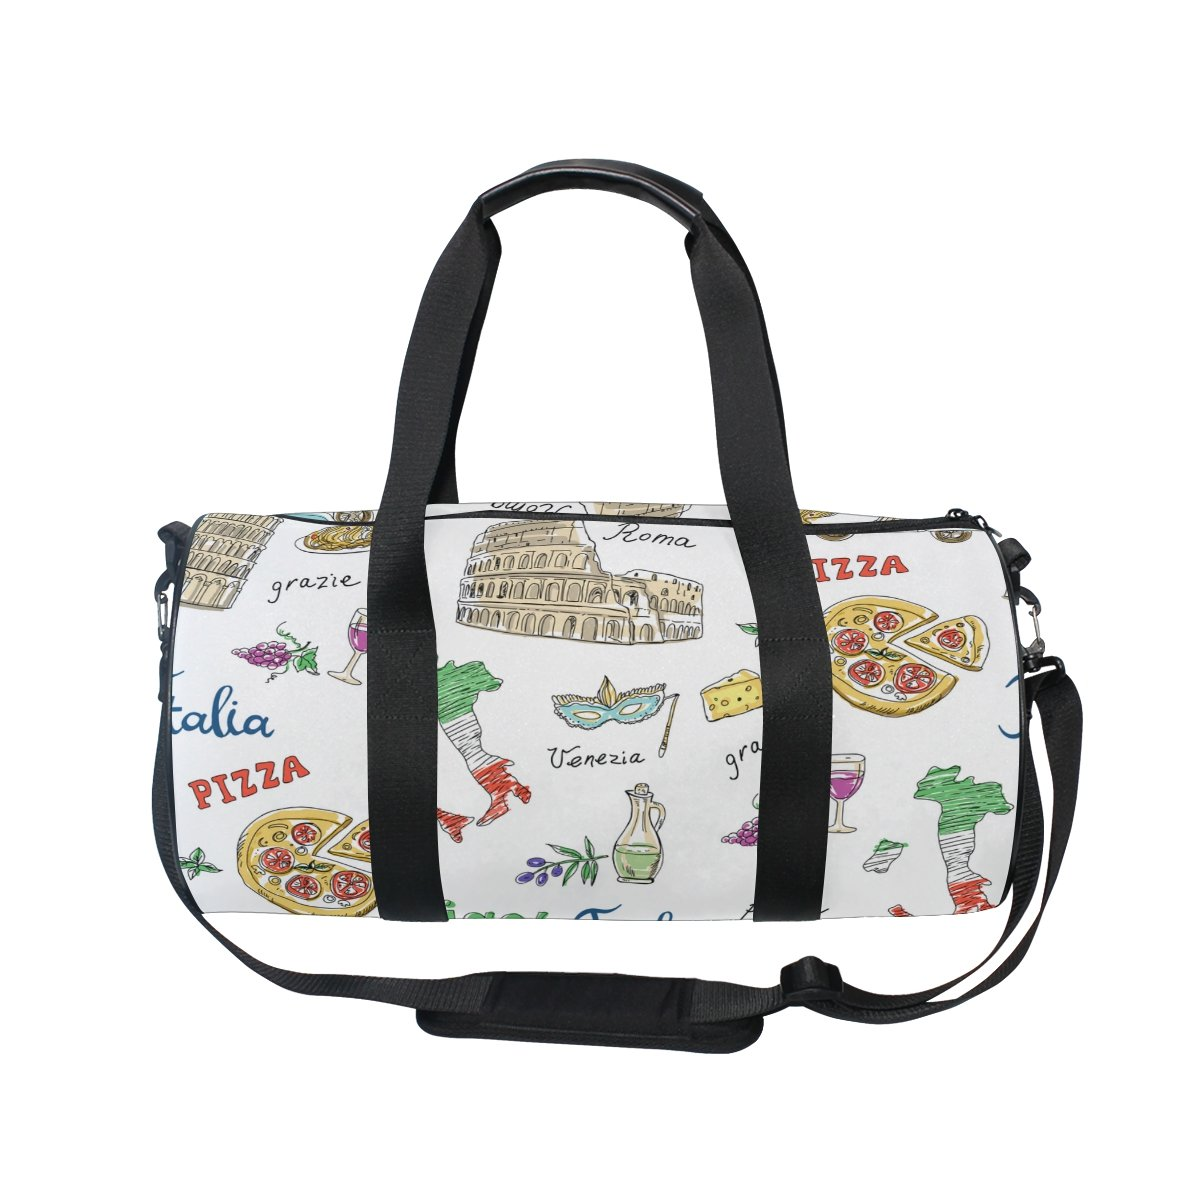 Cooper girl Travel Italy Pizza Duffels Bag Travel Sport Gym Bag